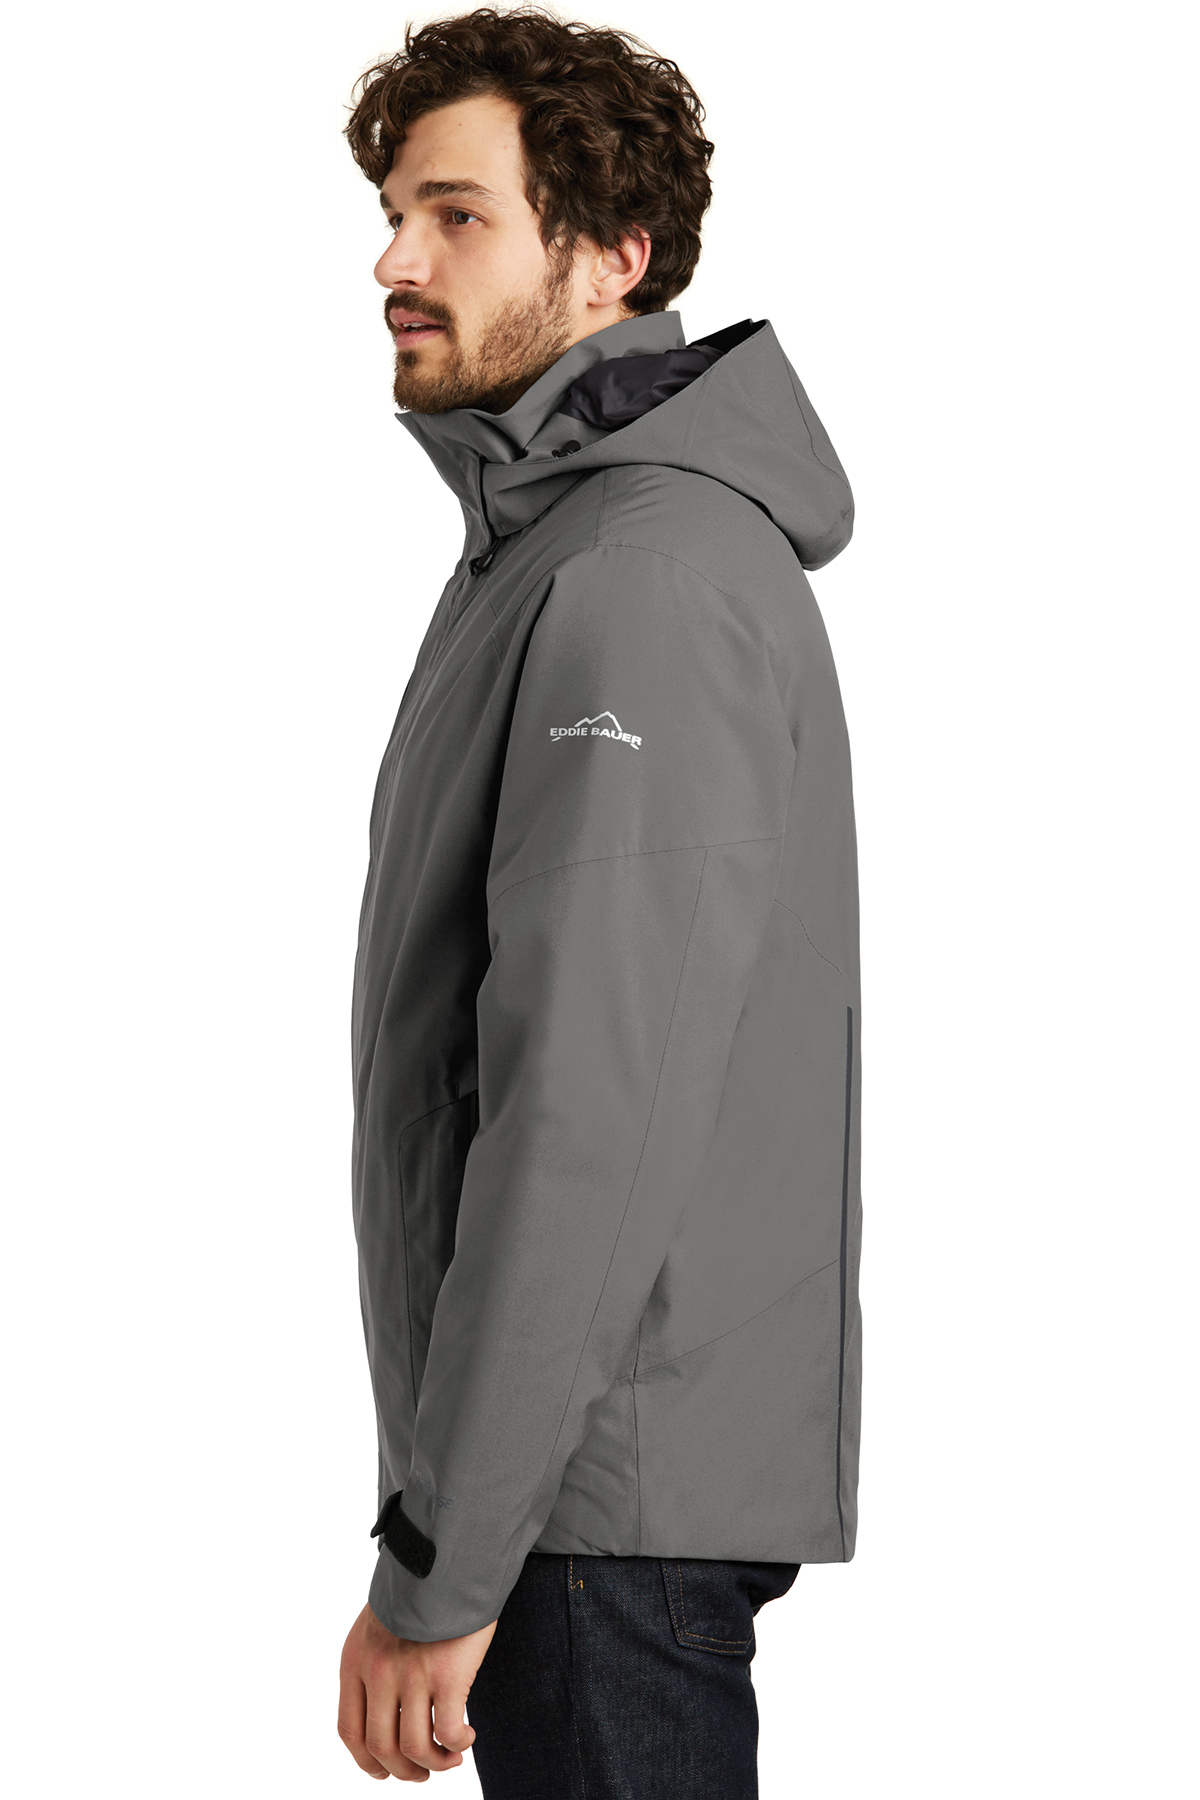 Ed Bauer WeatherEdge Plus Insulated Jacket